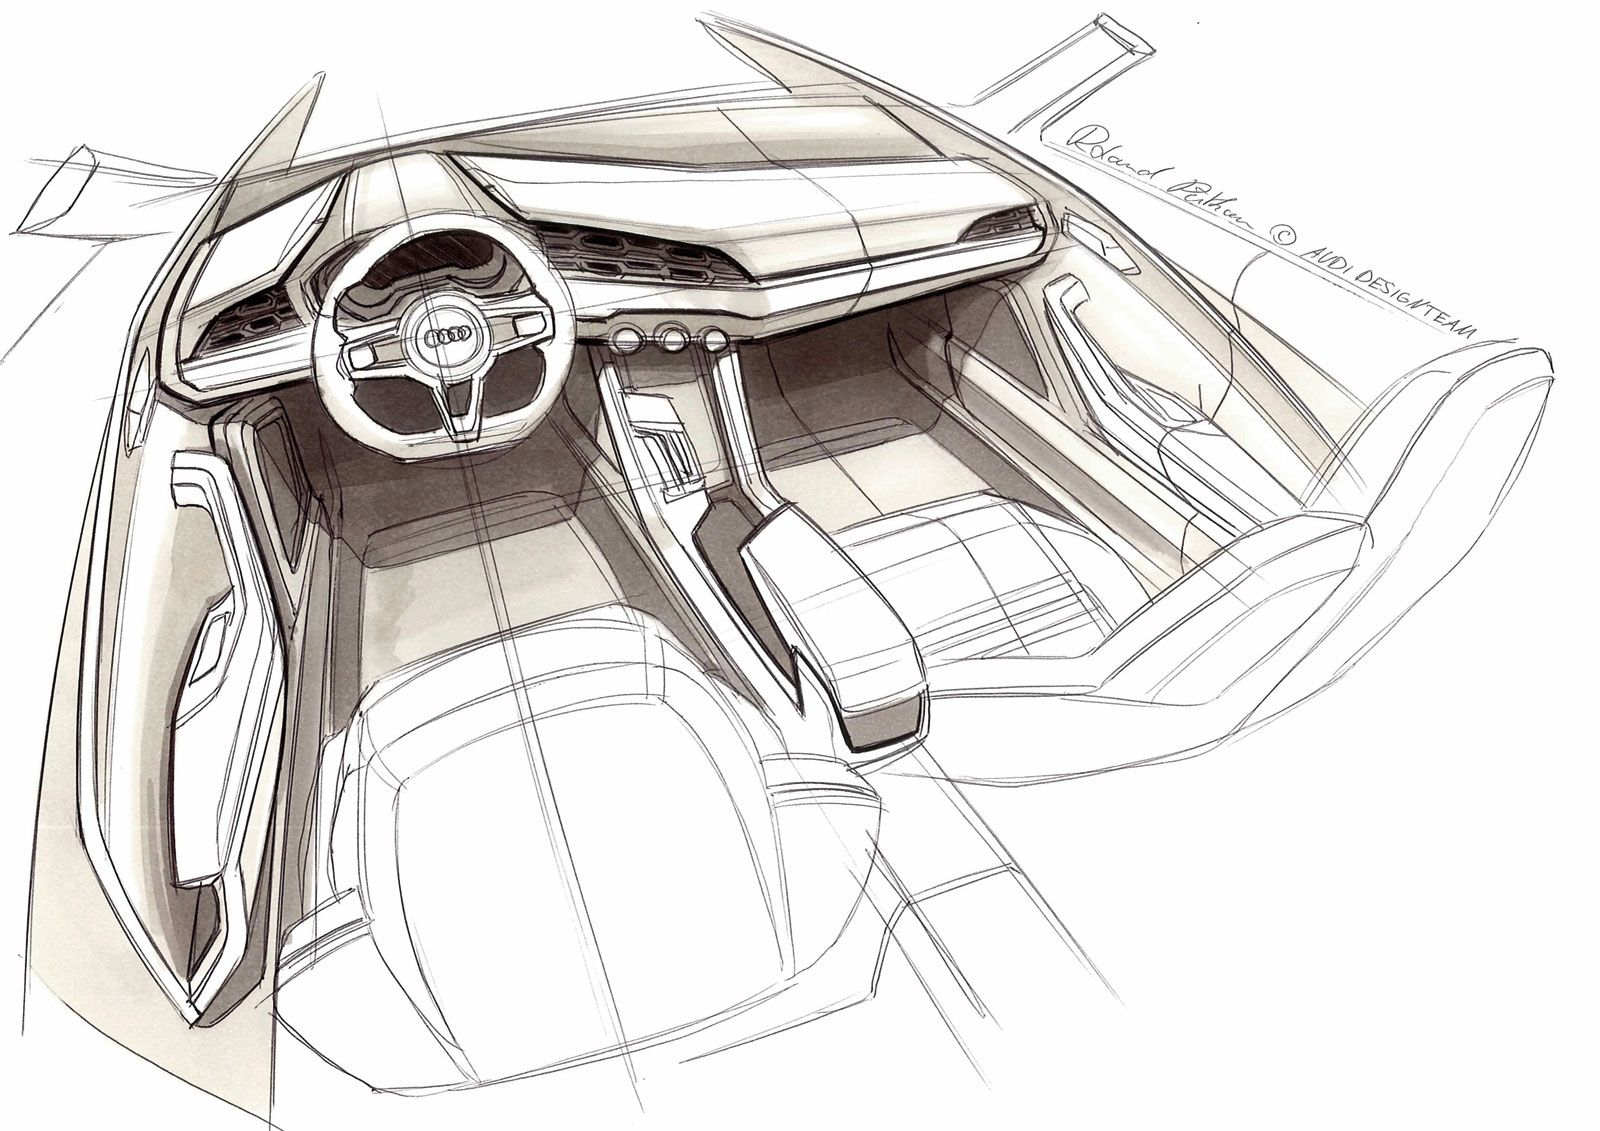 Audi crosslane coupe concept interior design sketch skething 2d art pinterest interior - Car interior design ideas ...